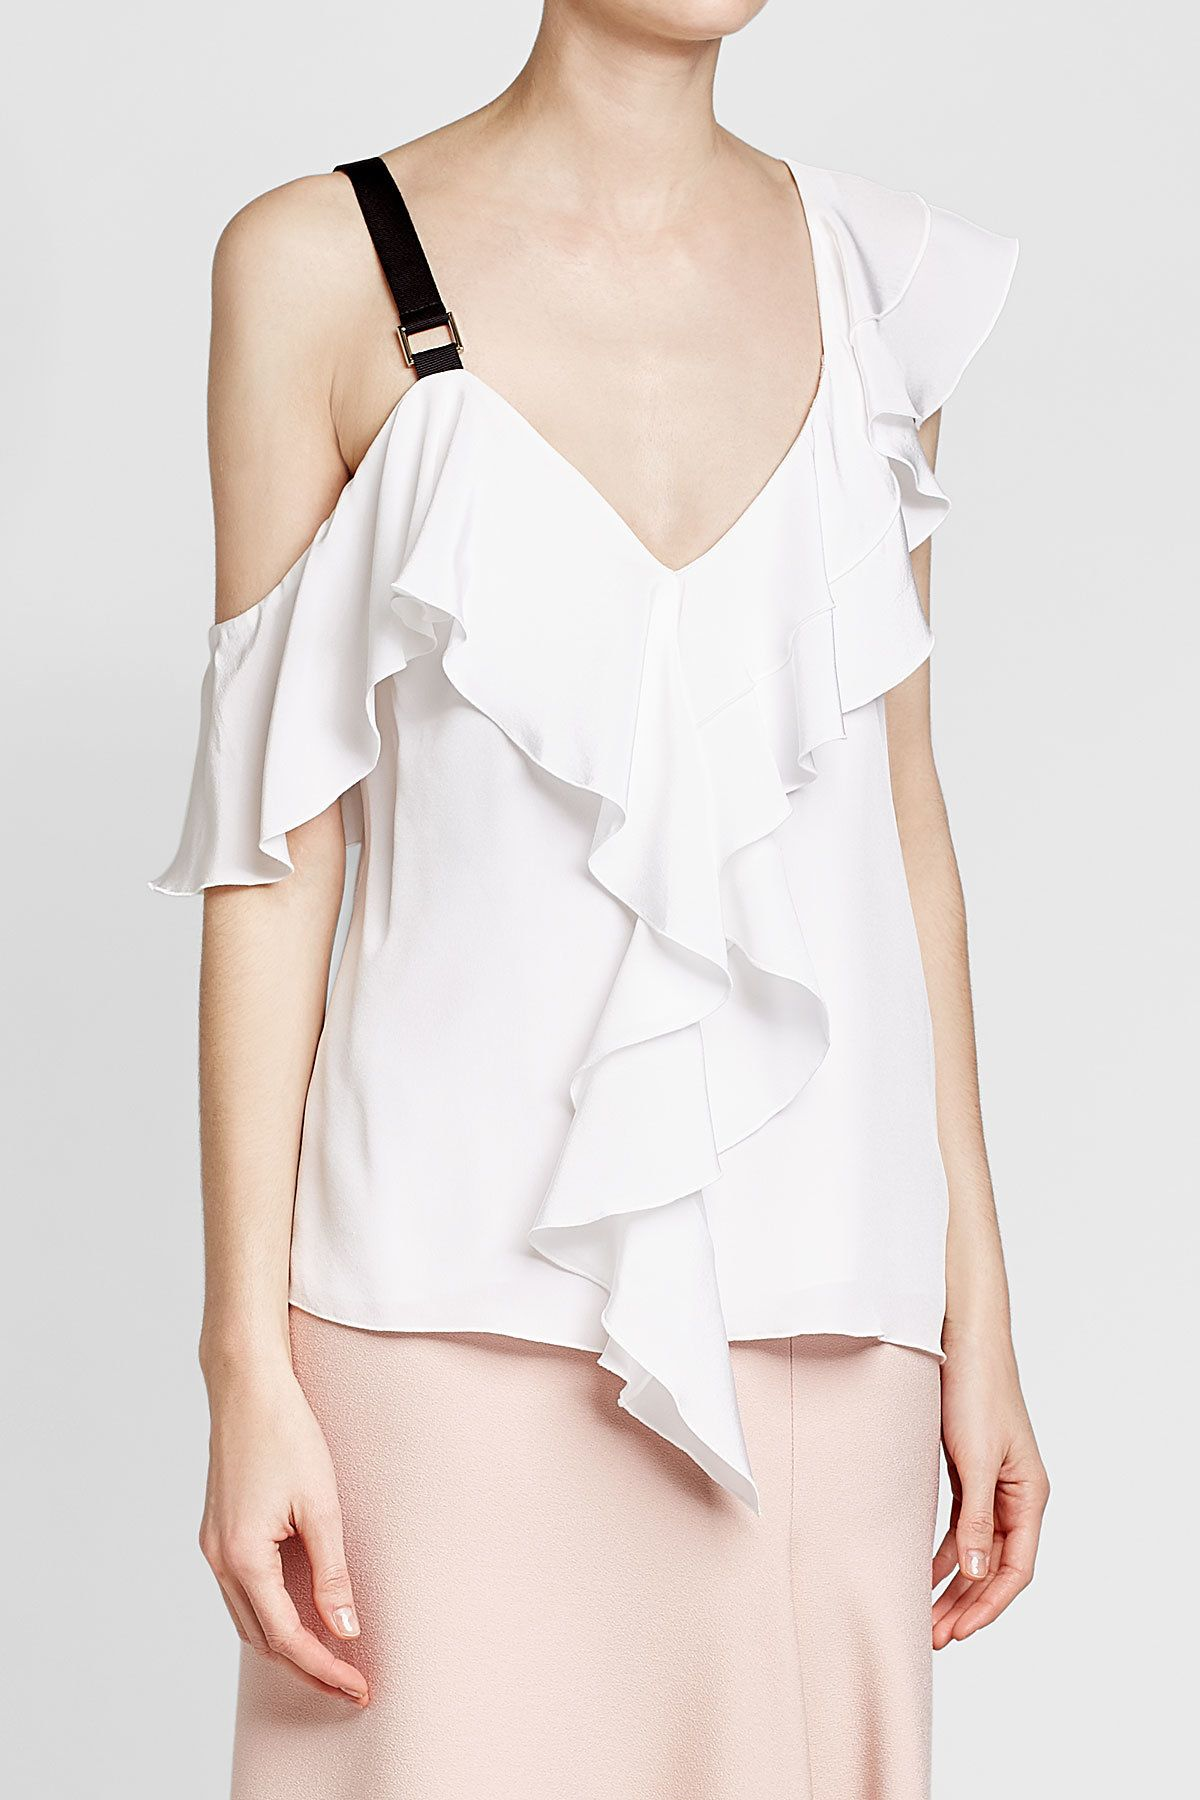 Best Place Cheap Price Silk ruffle top Proenza Schouler Big Sale Free Shipping Get Authentic Cheap Sale Amazon v7sOl